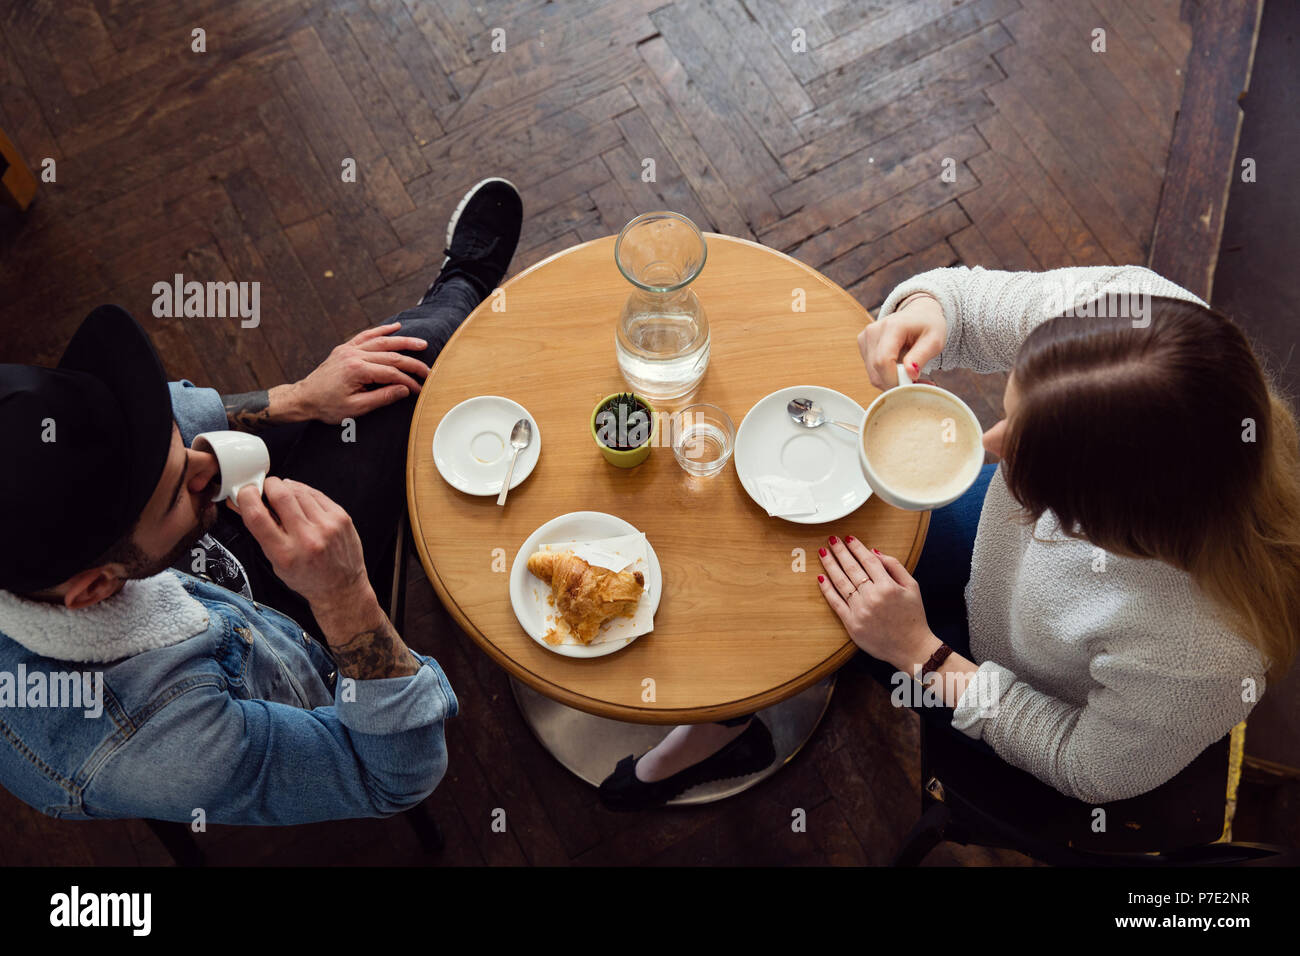 Couple having coffee in cafe Photo Stock